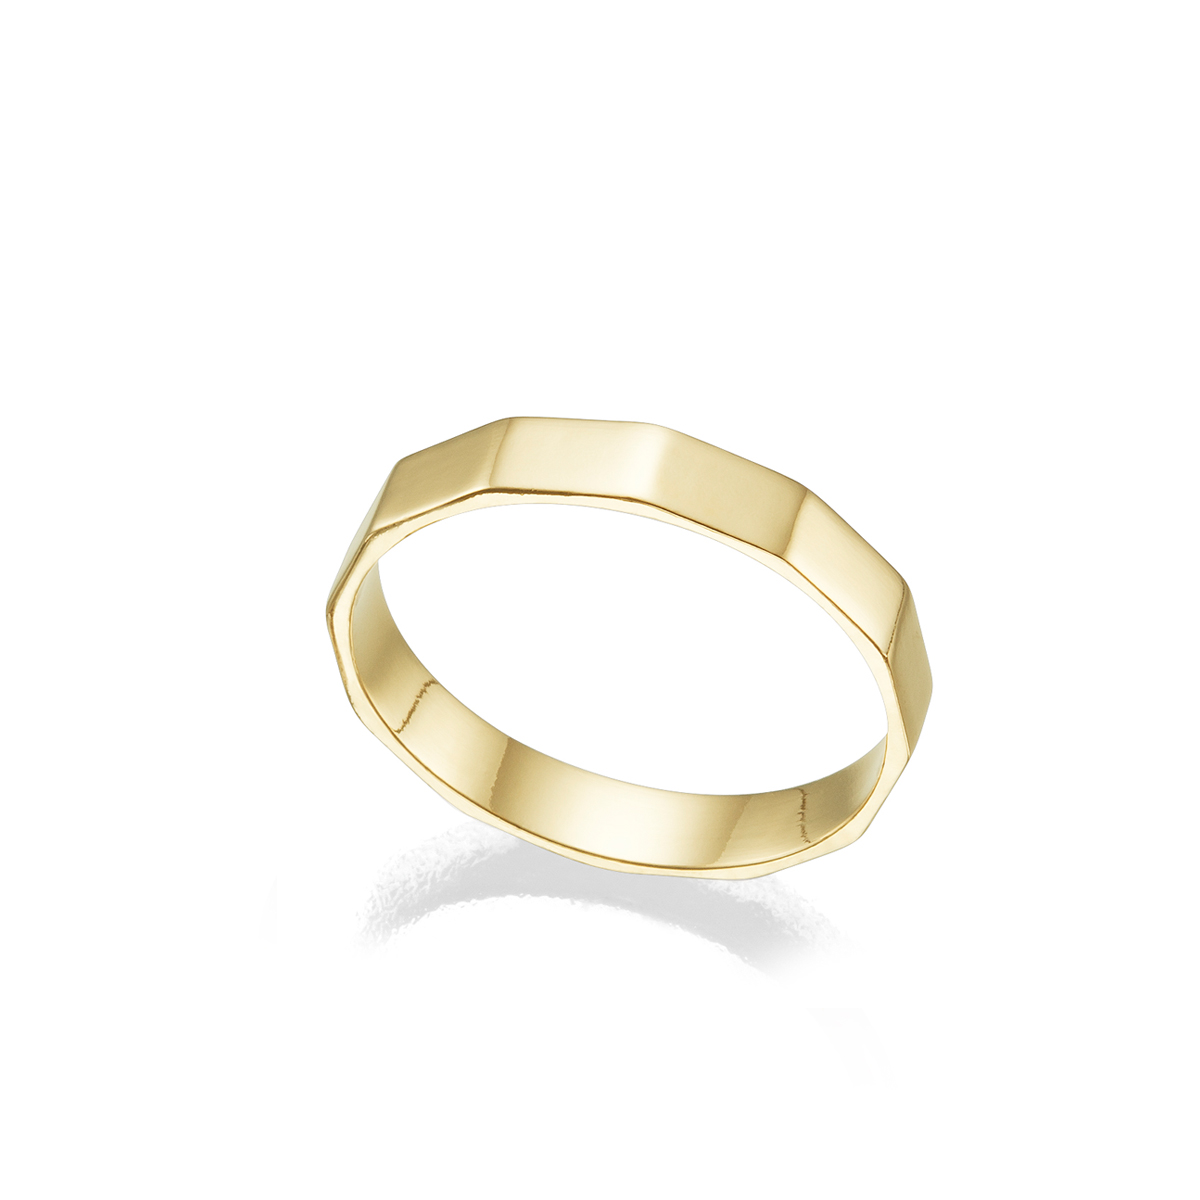 Nut shaped gold ring